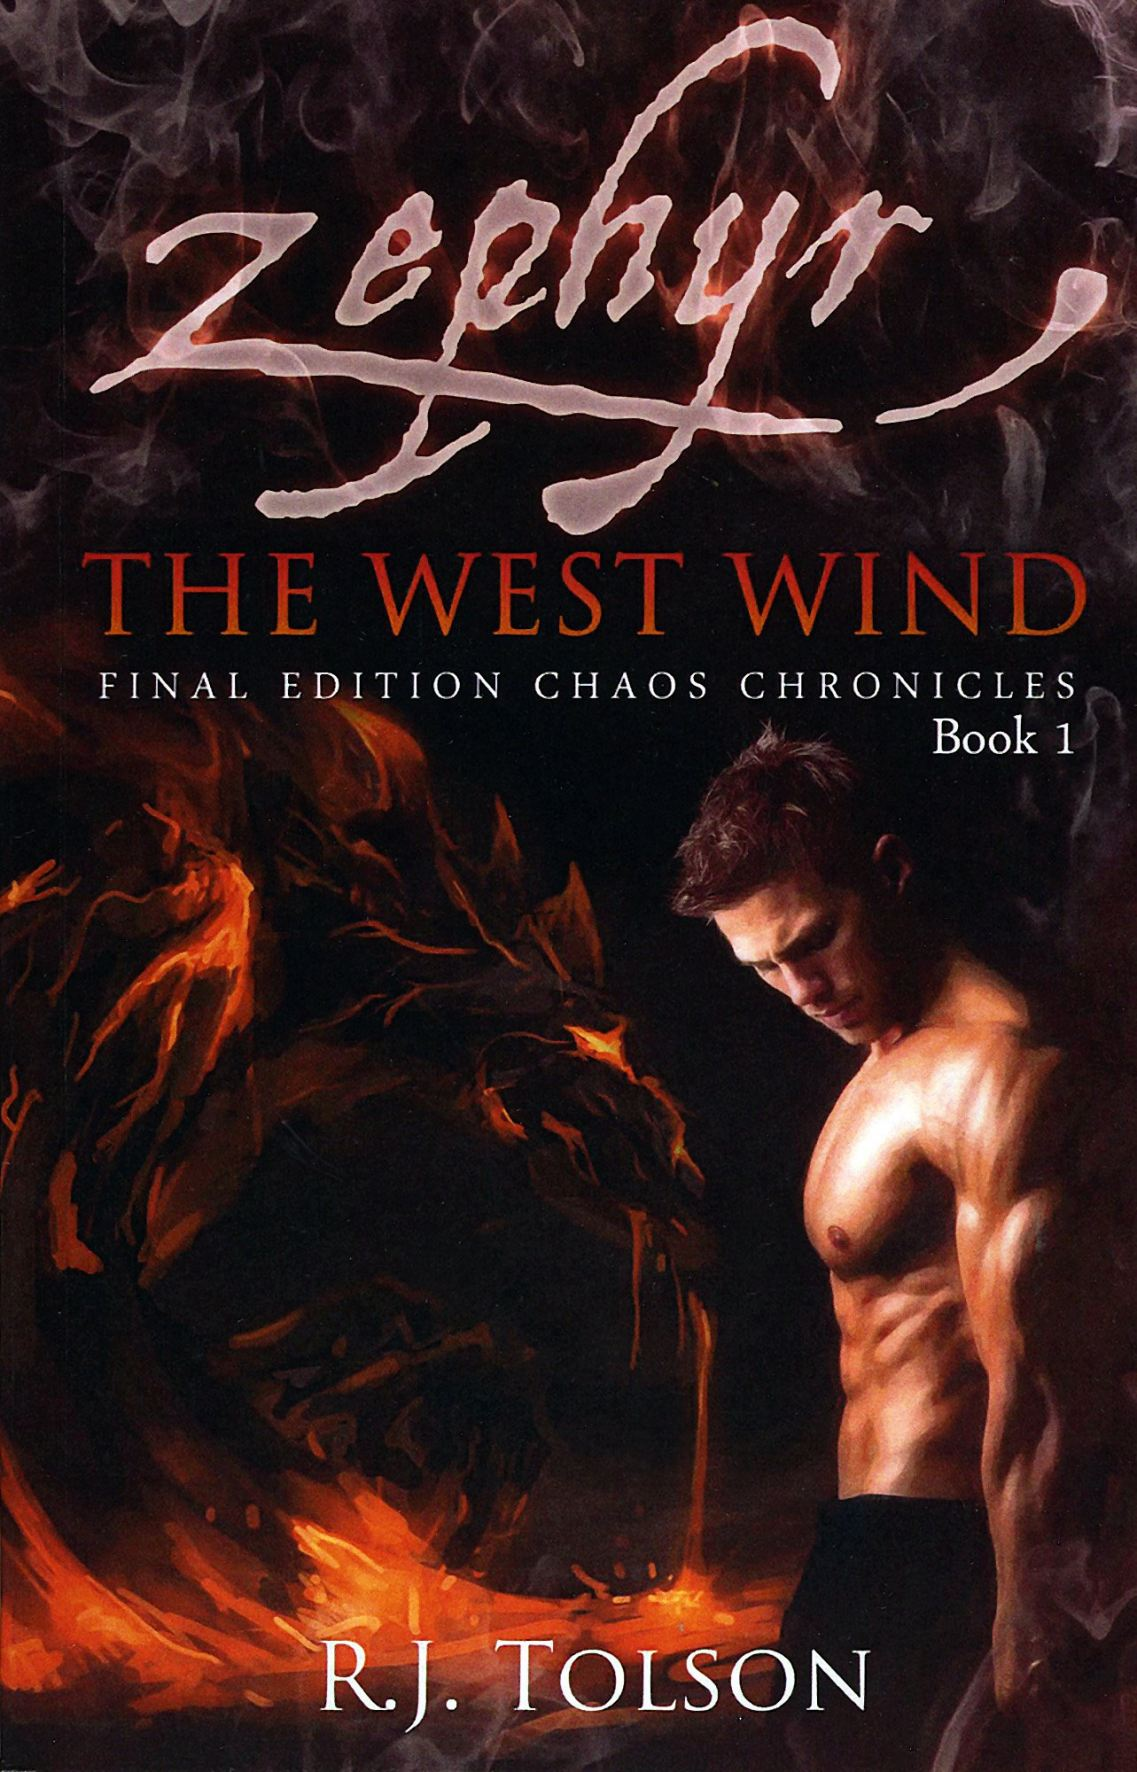 Chaos Chronicles Book 1: Zephyr The West Wind by R.J. Tolson